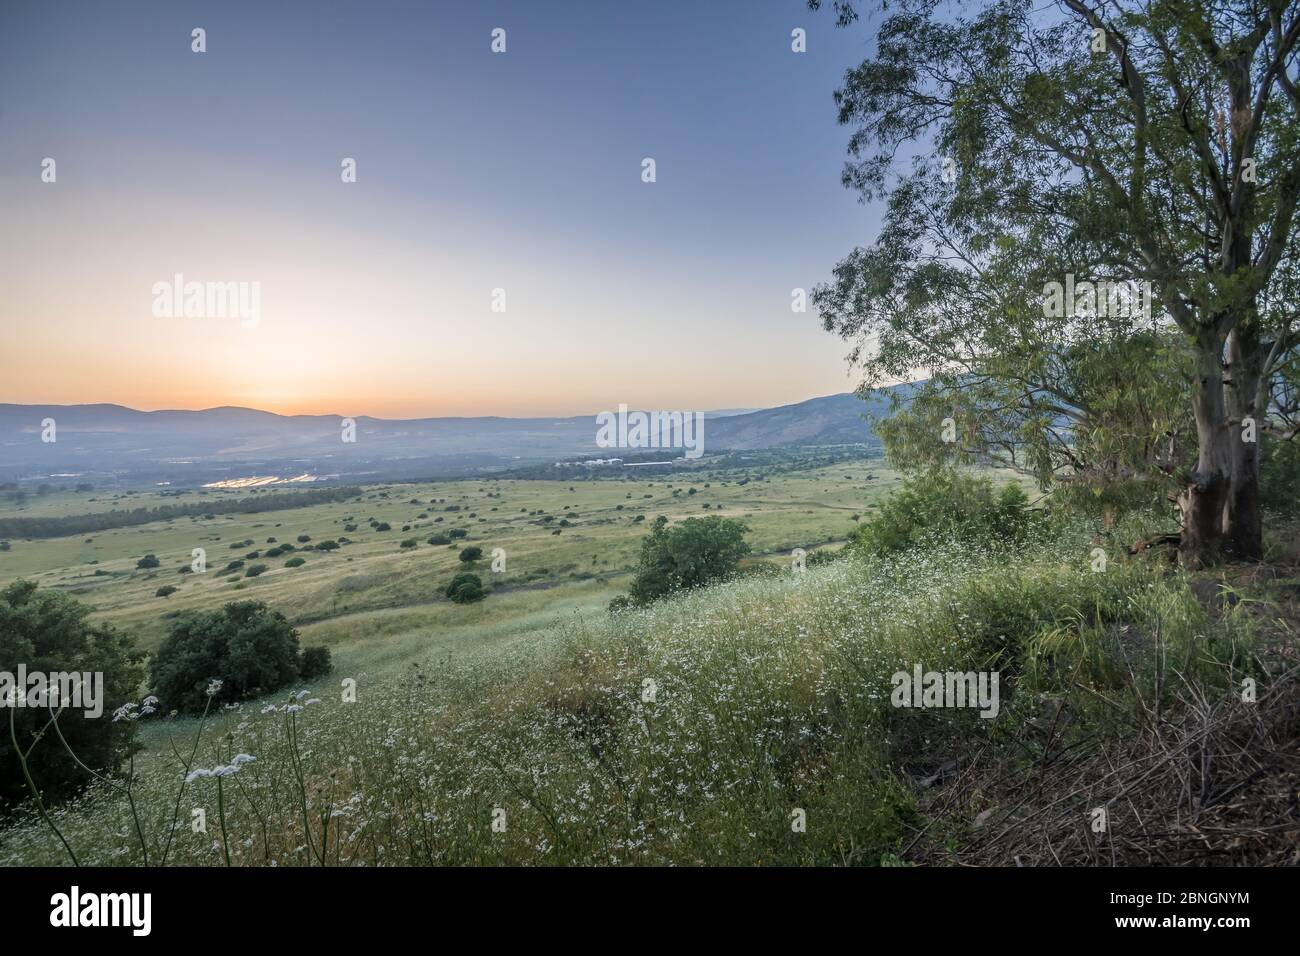 Sunset view of the slopes of the Golan Heights, and the Hula Valley. Northern Israel Stock Photo